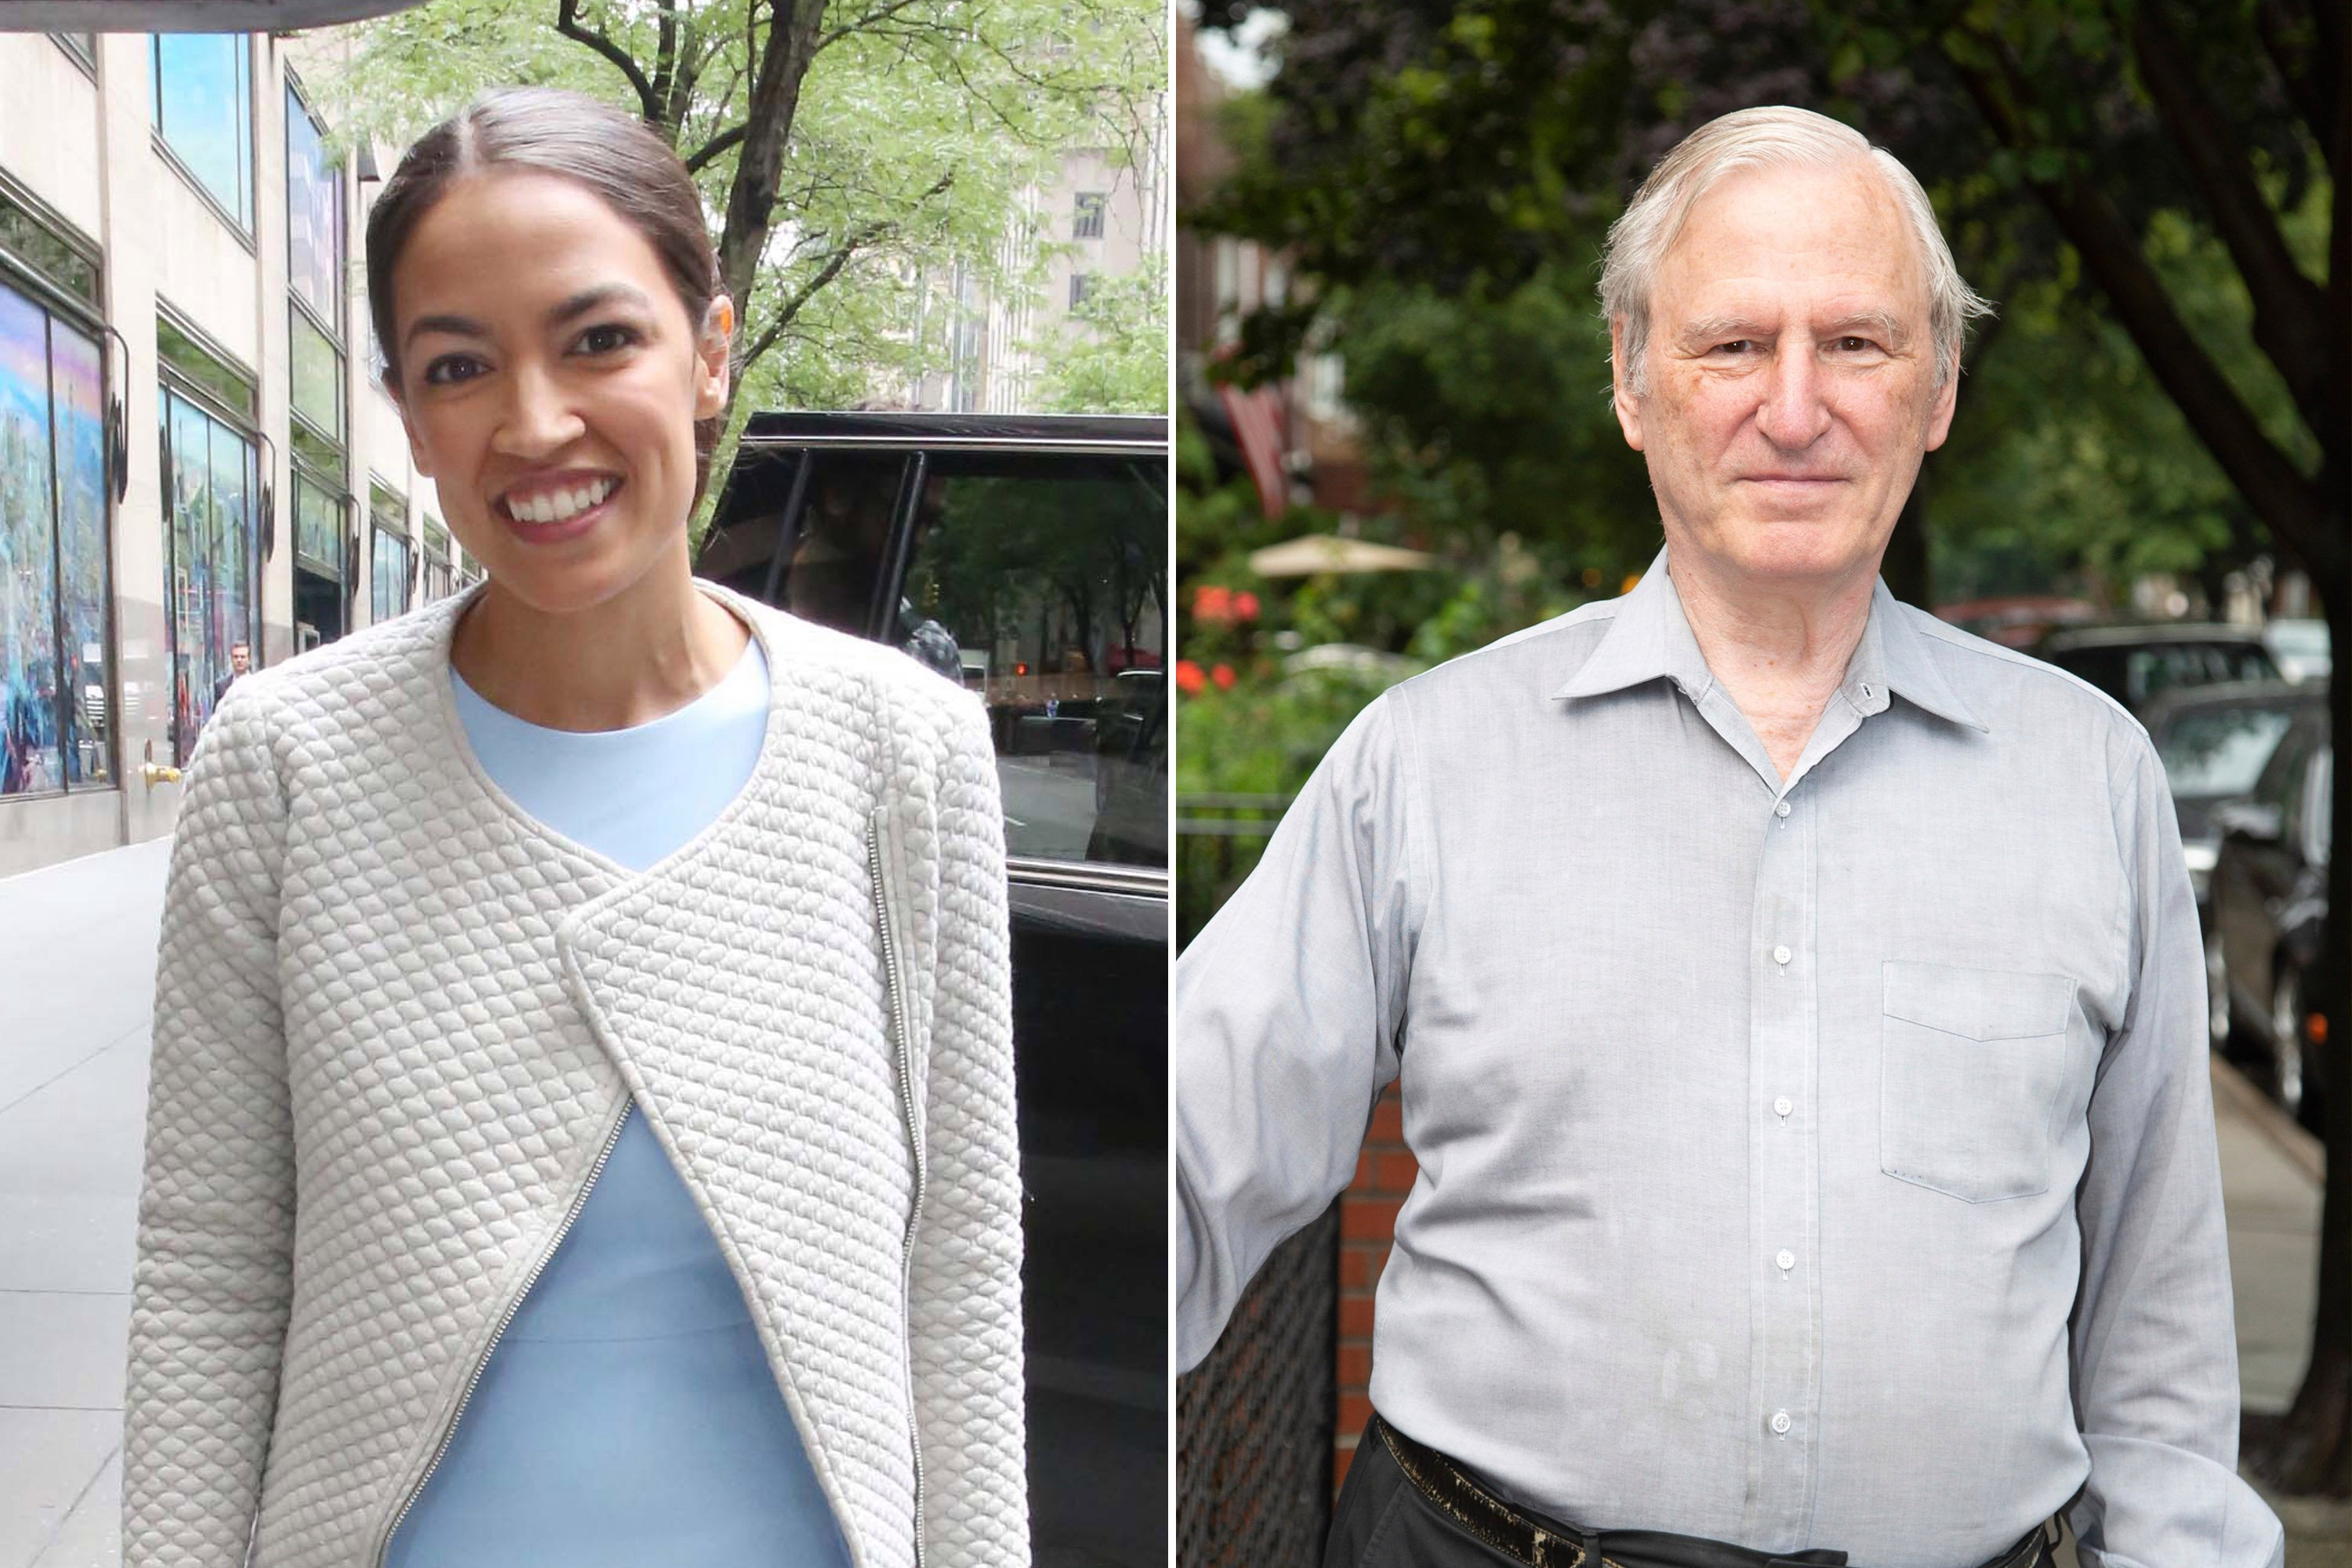 cortez divorced singles Alexandria ocasio-cortez's opponent hasn't gotten a single donation yet:  thanks for watching,  new york divorce records are sealed,.